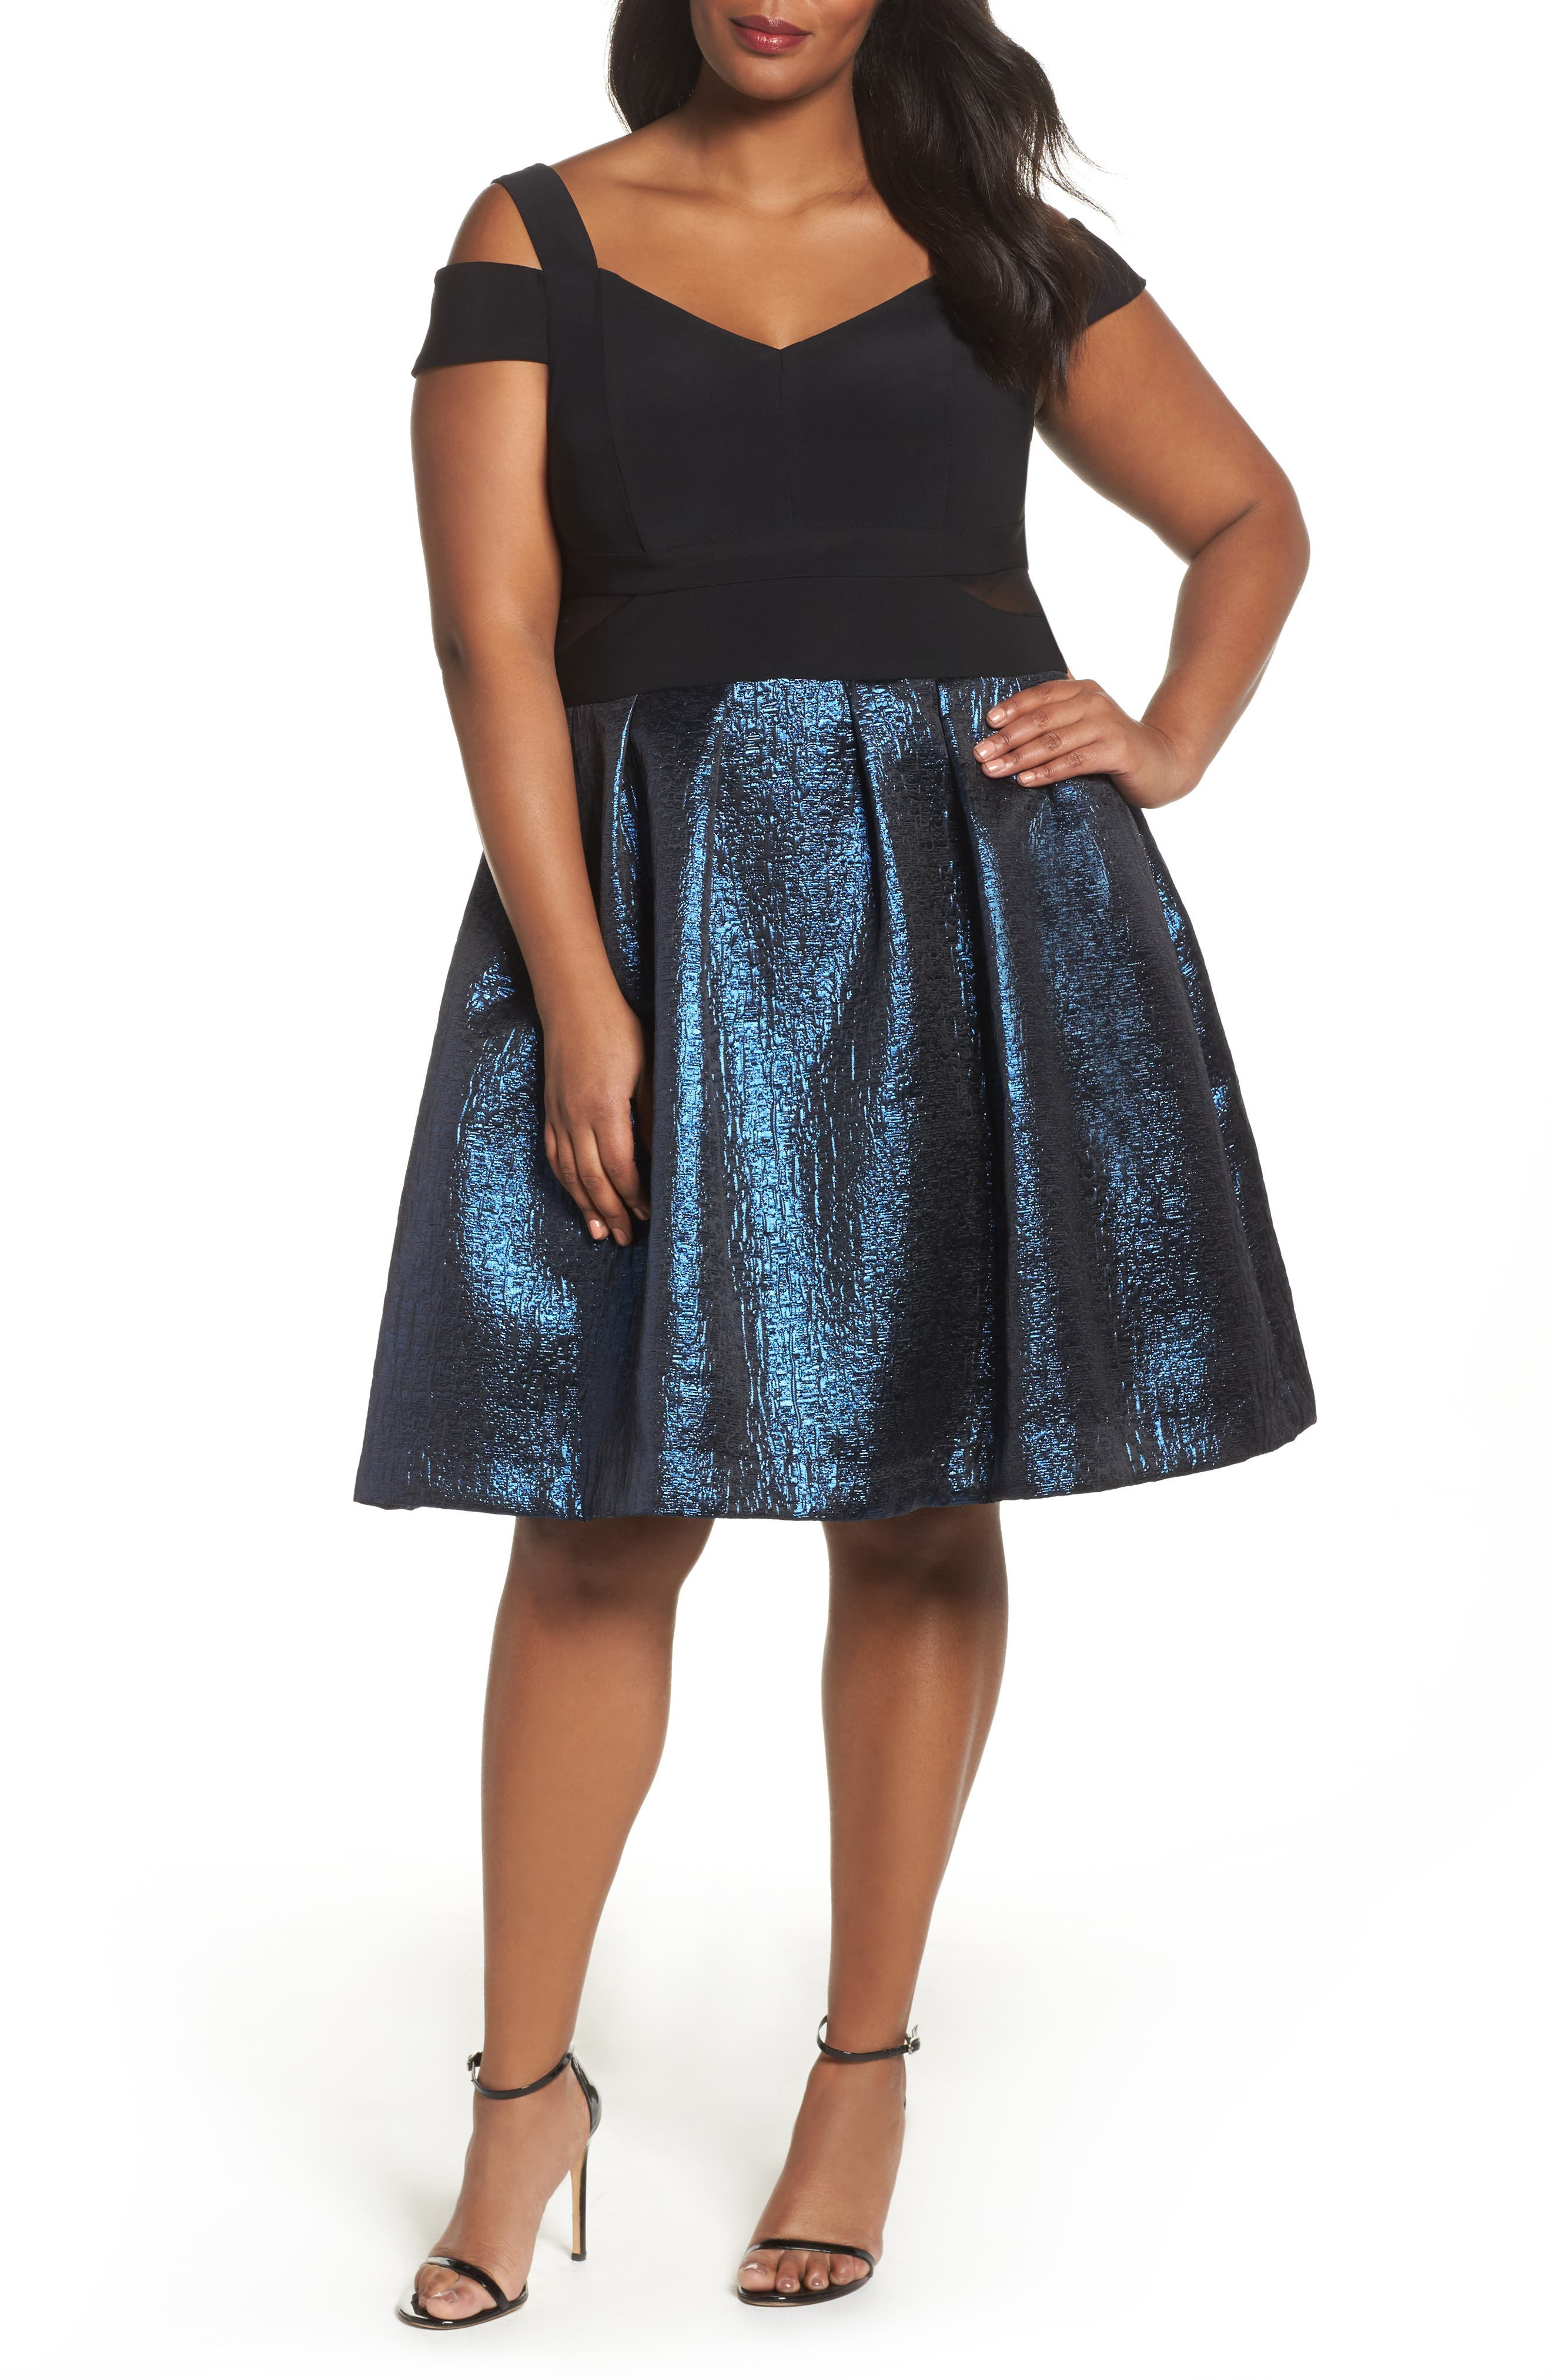 Alternate Image 1 Selected - Xscape Cold Shoulder Mixed Media Party Dress (Plus Size)